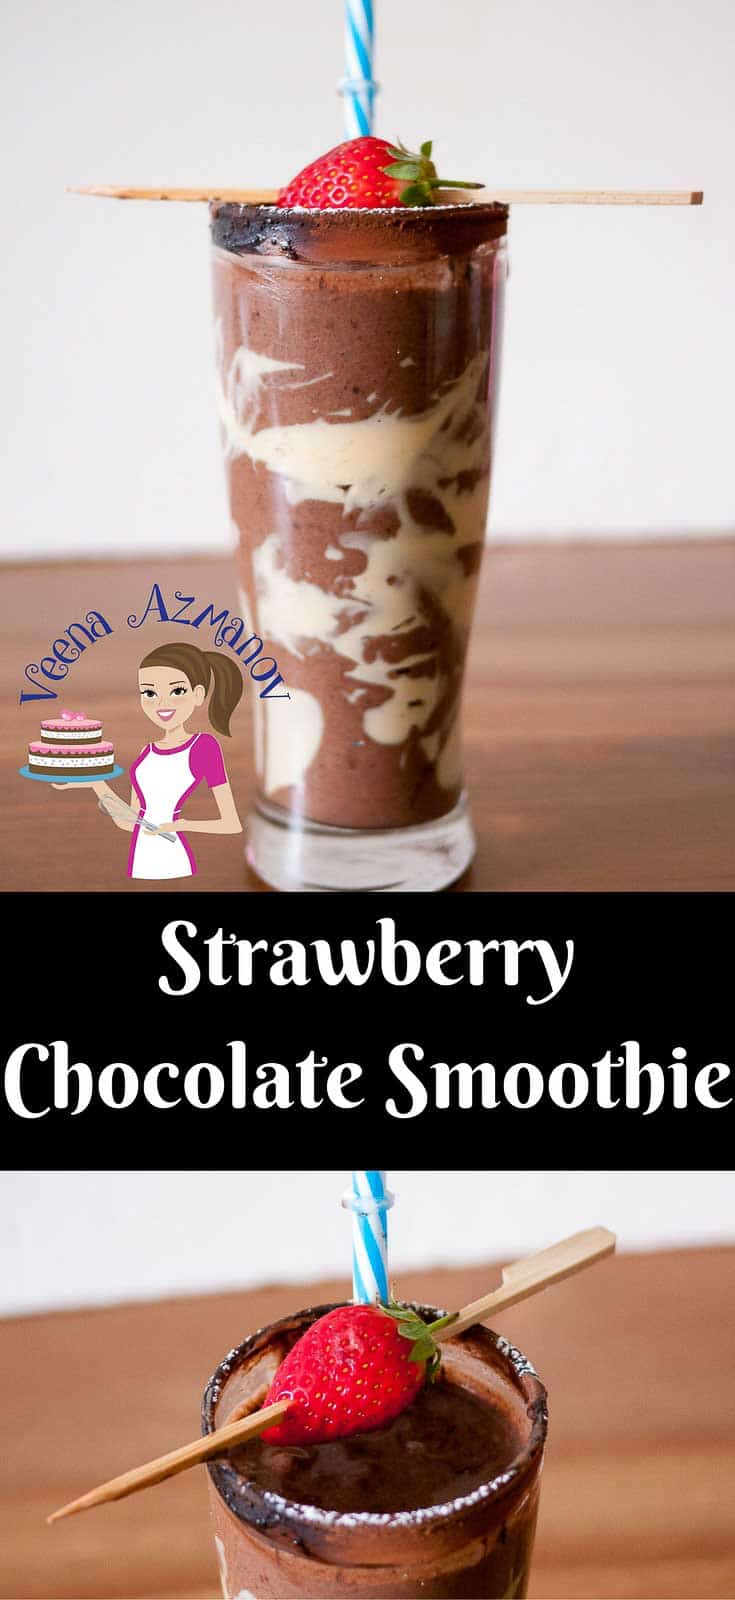 Strawberry and chocolate have always been a great pair. This fruity and chocolaty ;strawberry chocolate smoothie will have you cooling off this summer in luxury. Simple, easy and effortless with ingredients you probably already have in your pantry. This is a perfect treat anytime of the day.